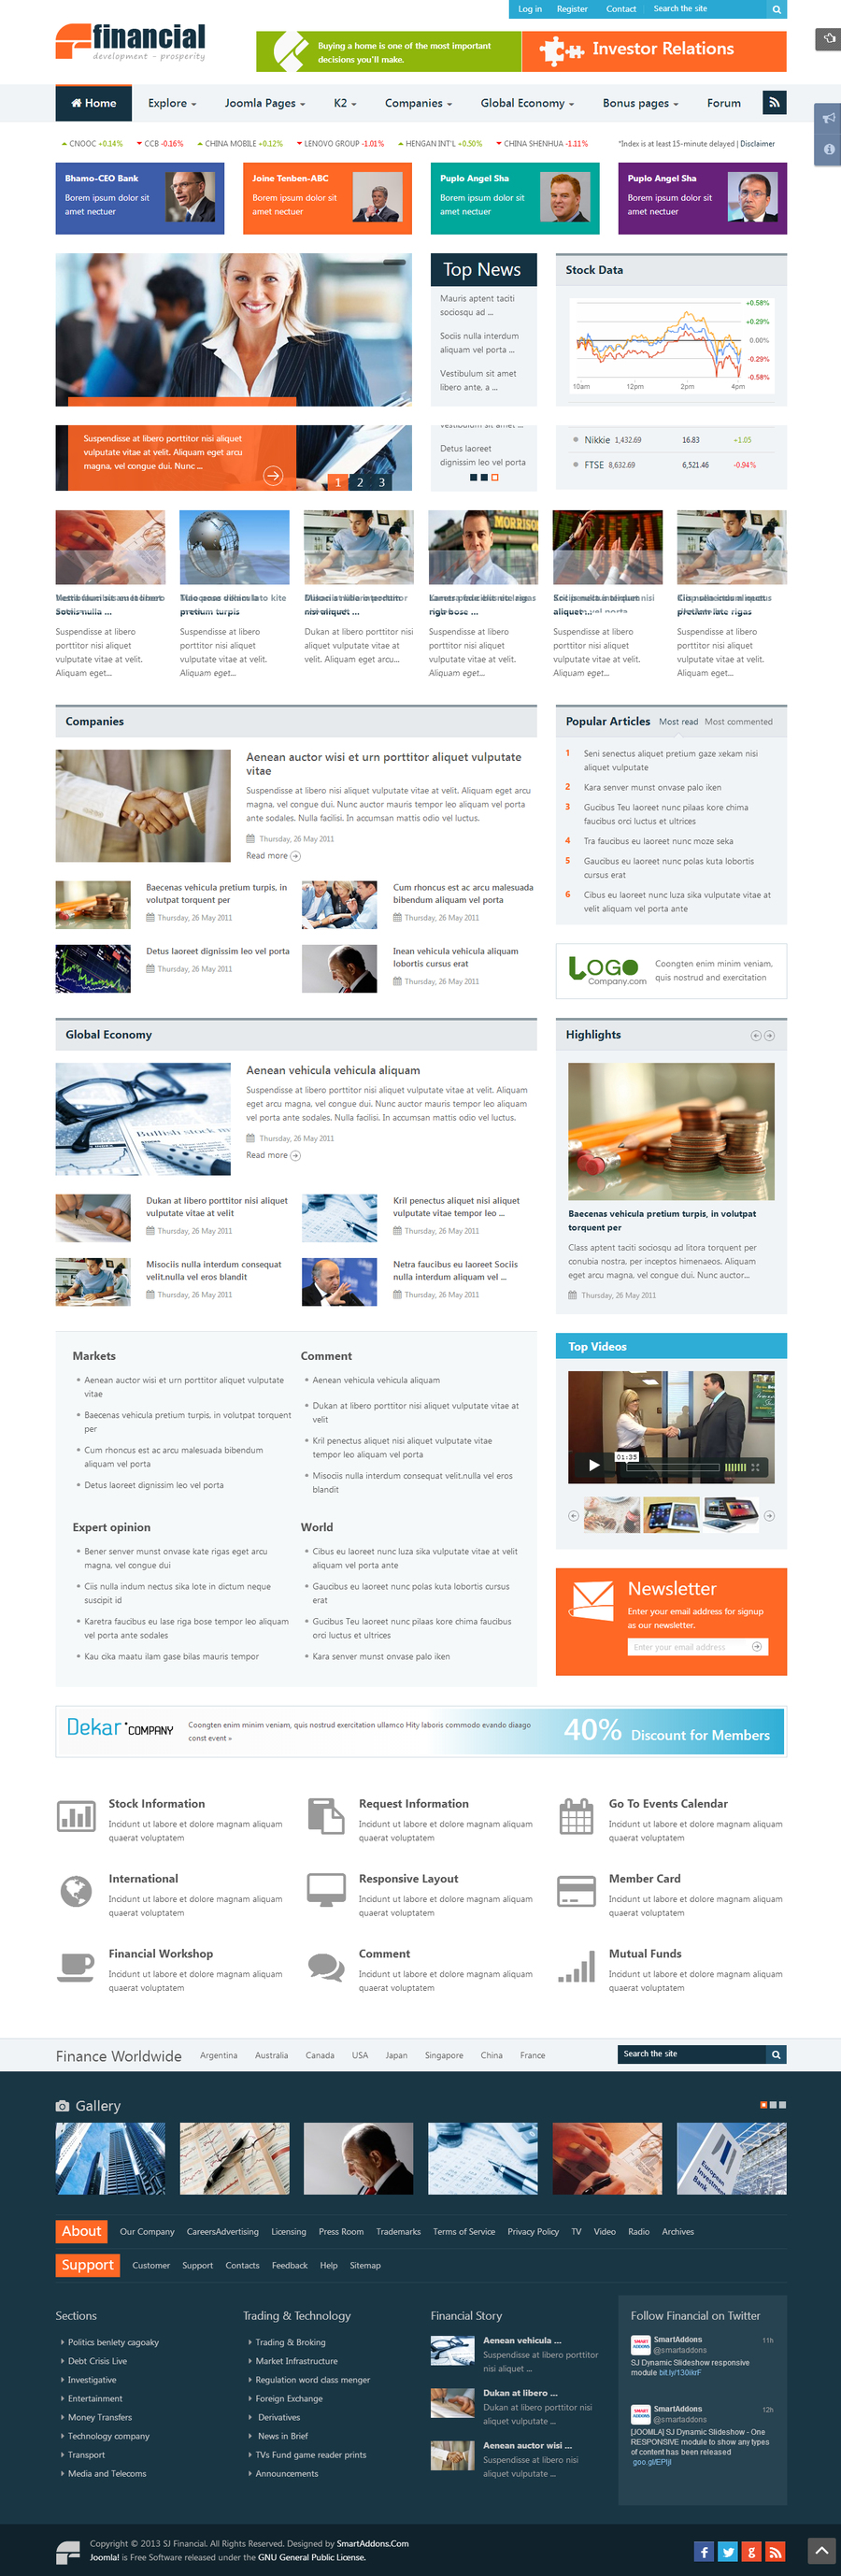 SJ Financial - Responsive Joomla Financial News Template - 01index.jpg